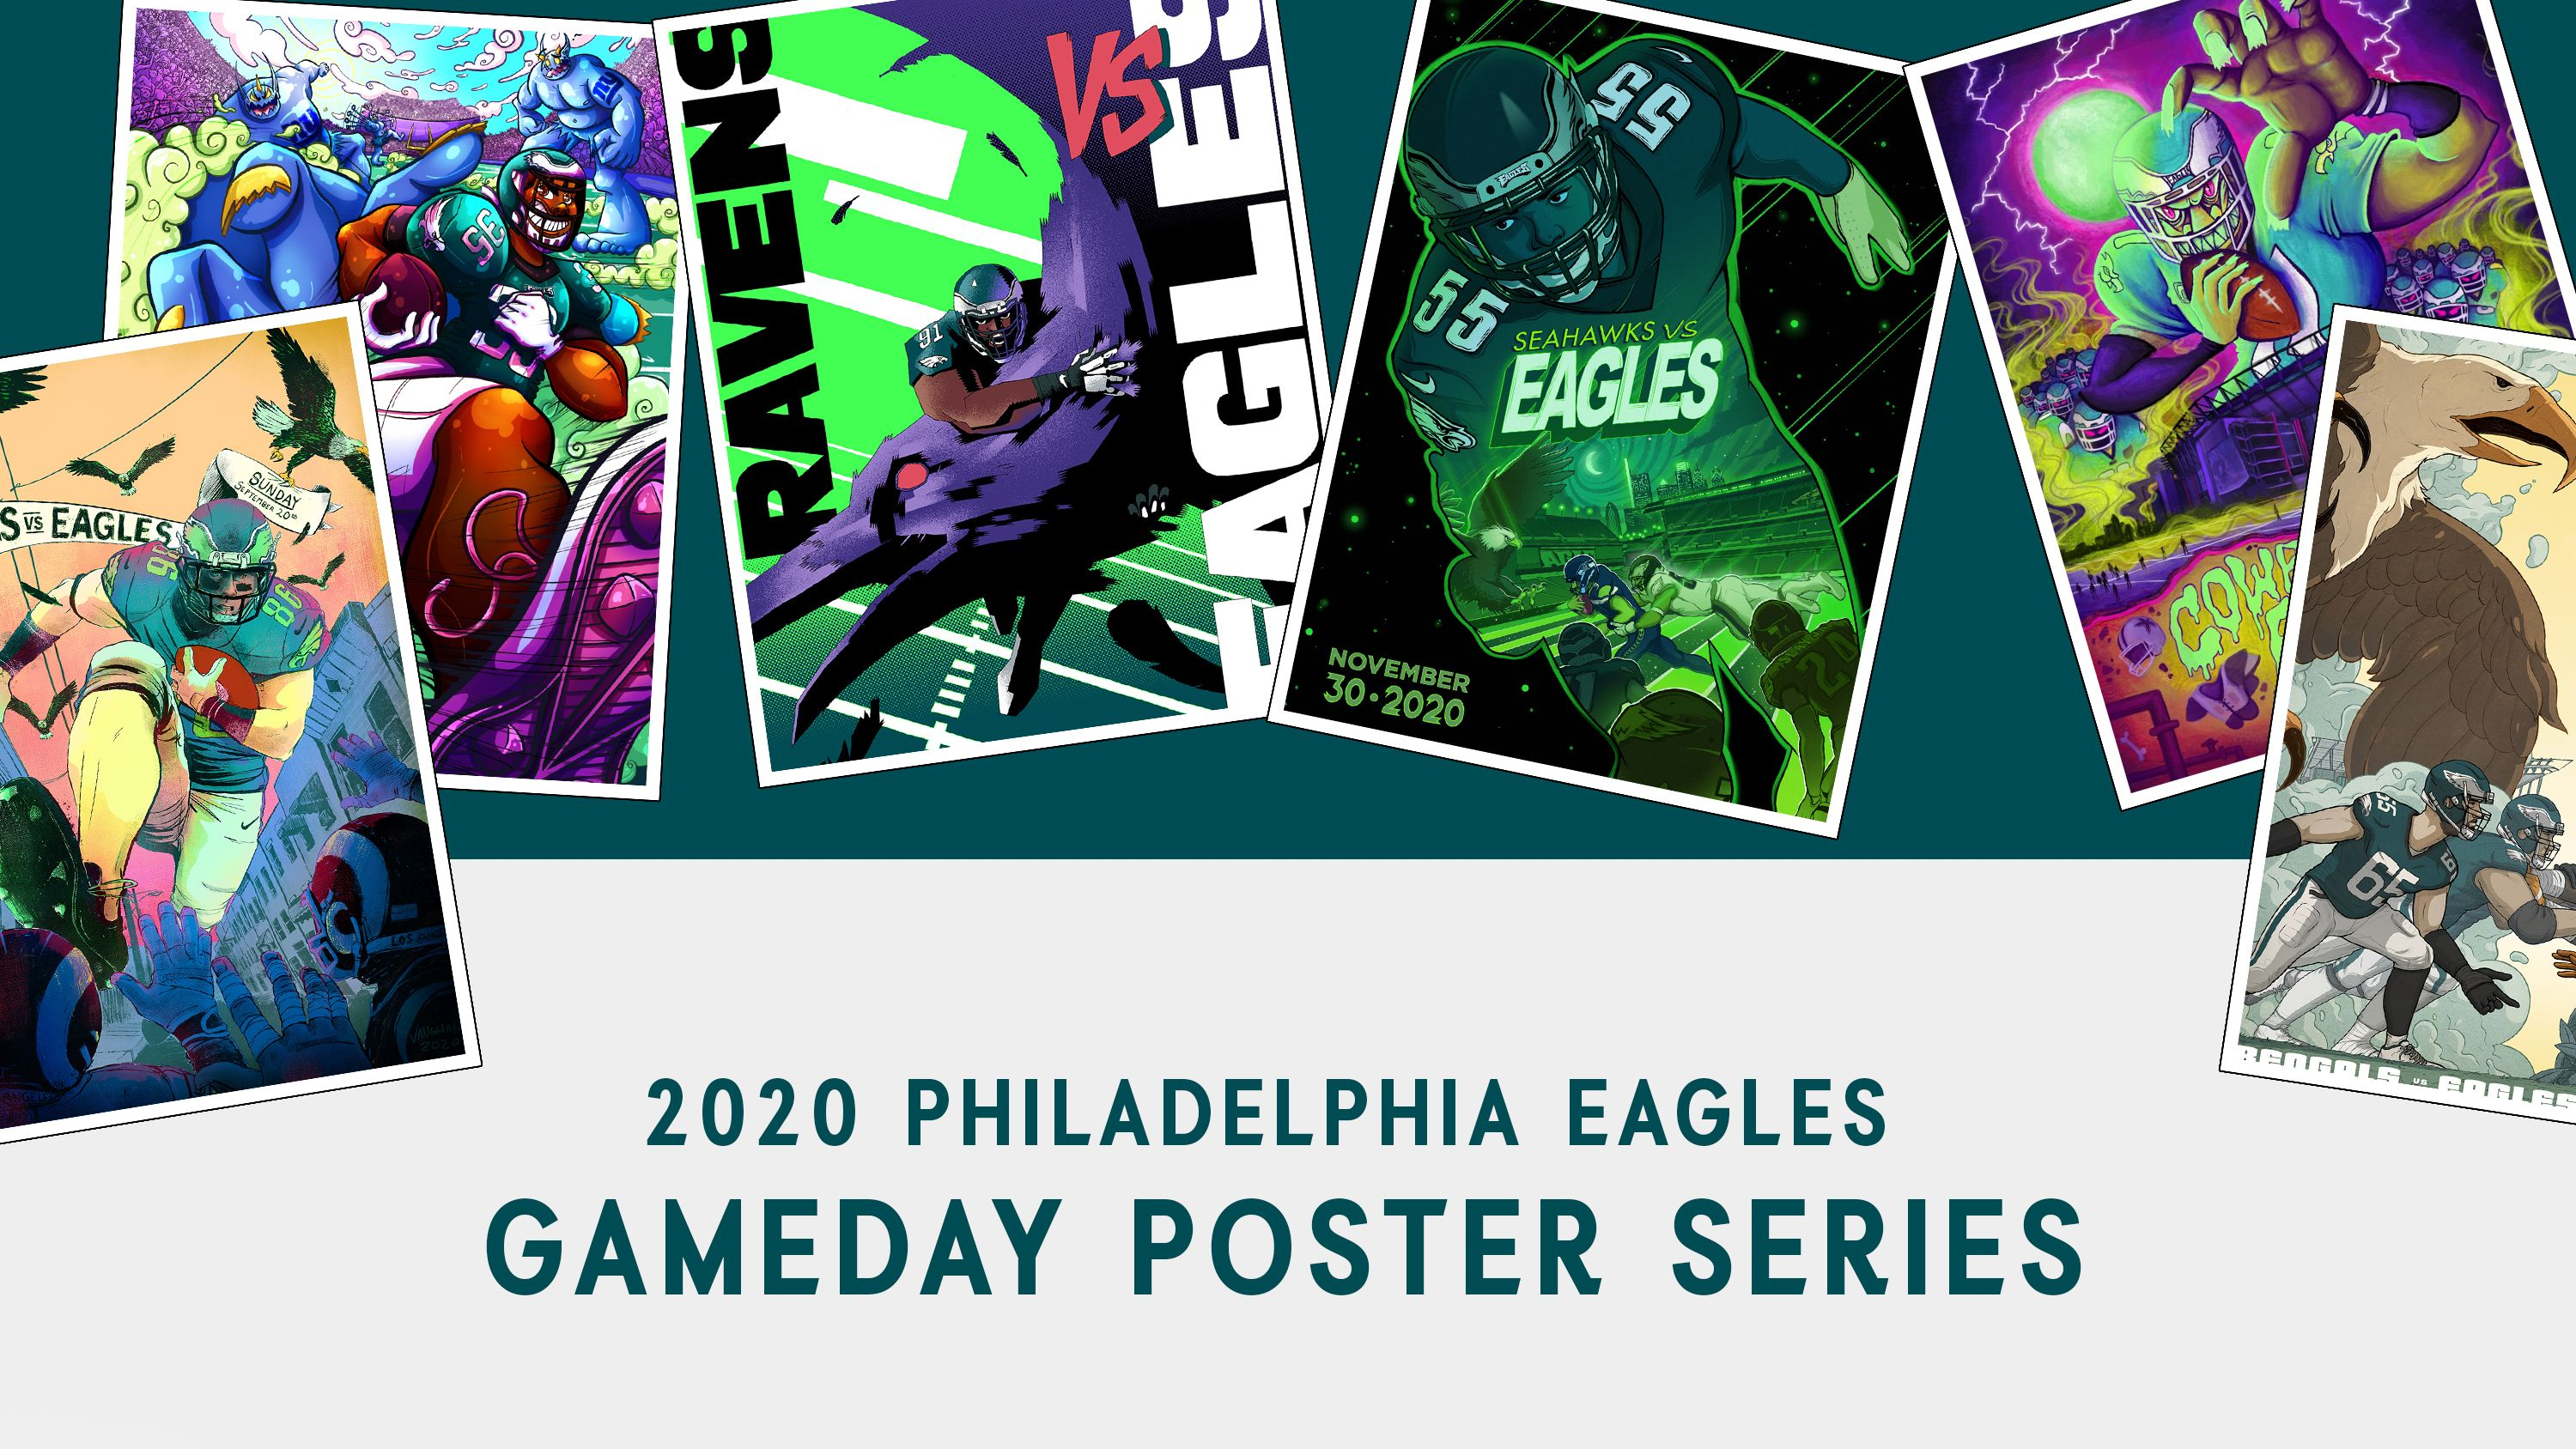 Eagles Gameday Poster Series